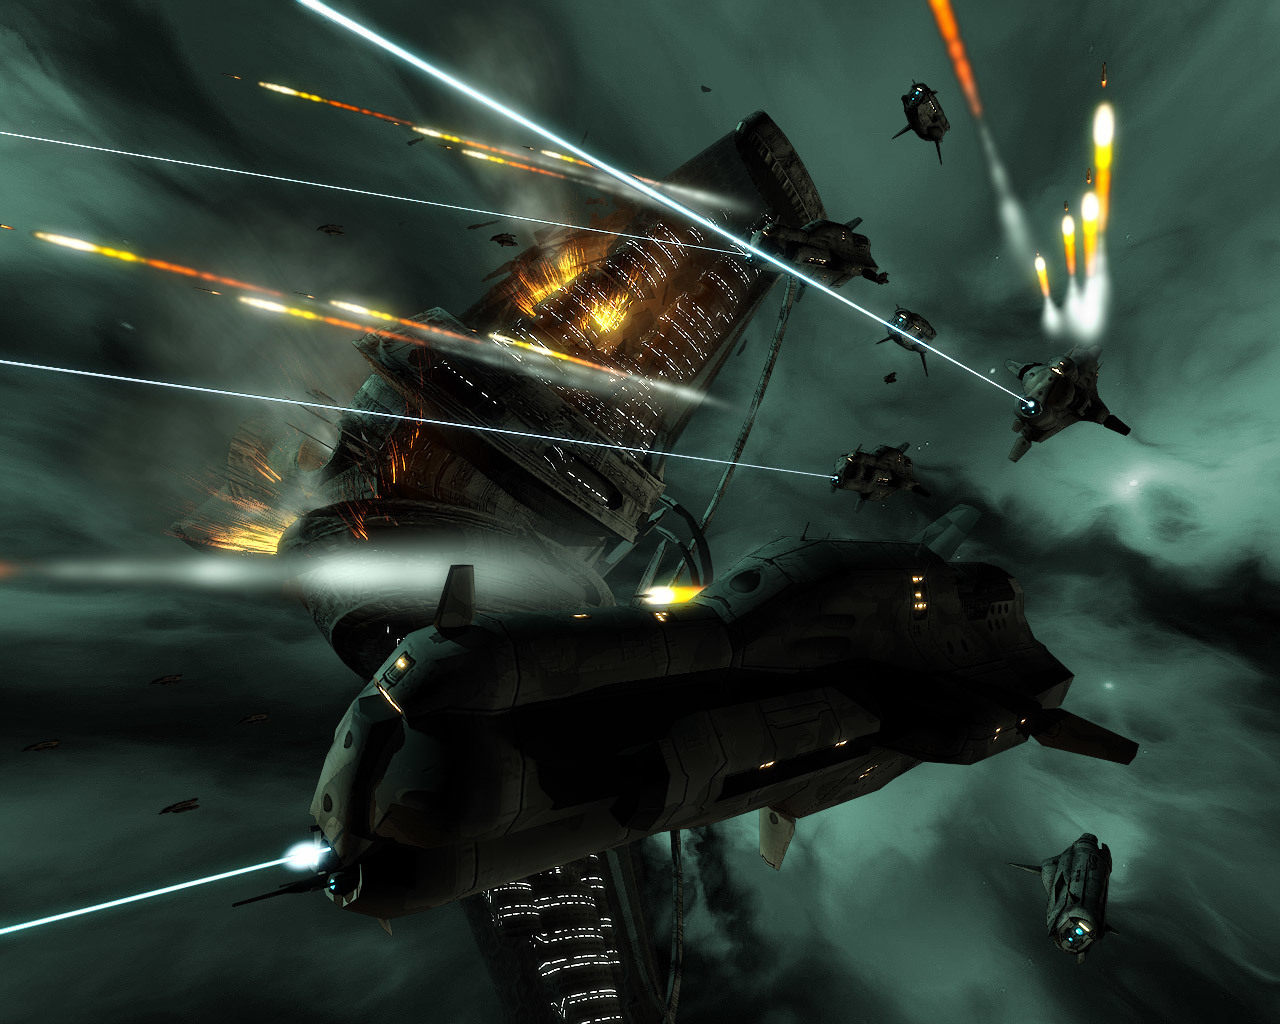 Space battleships battle War HD Wallpaper